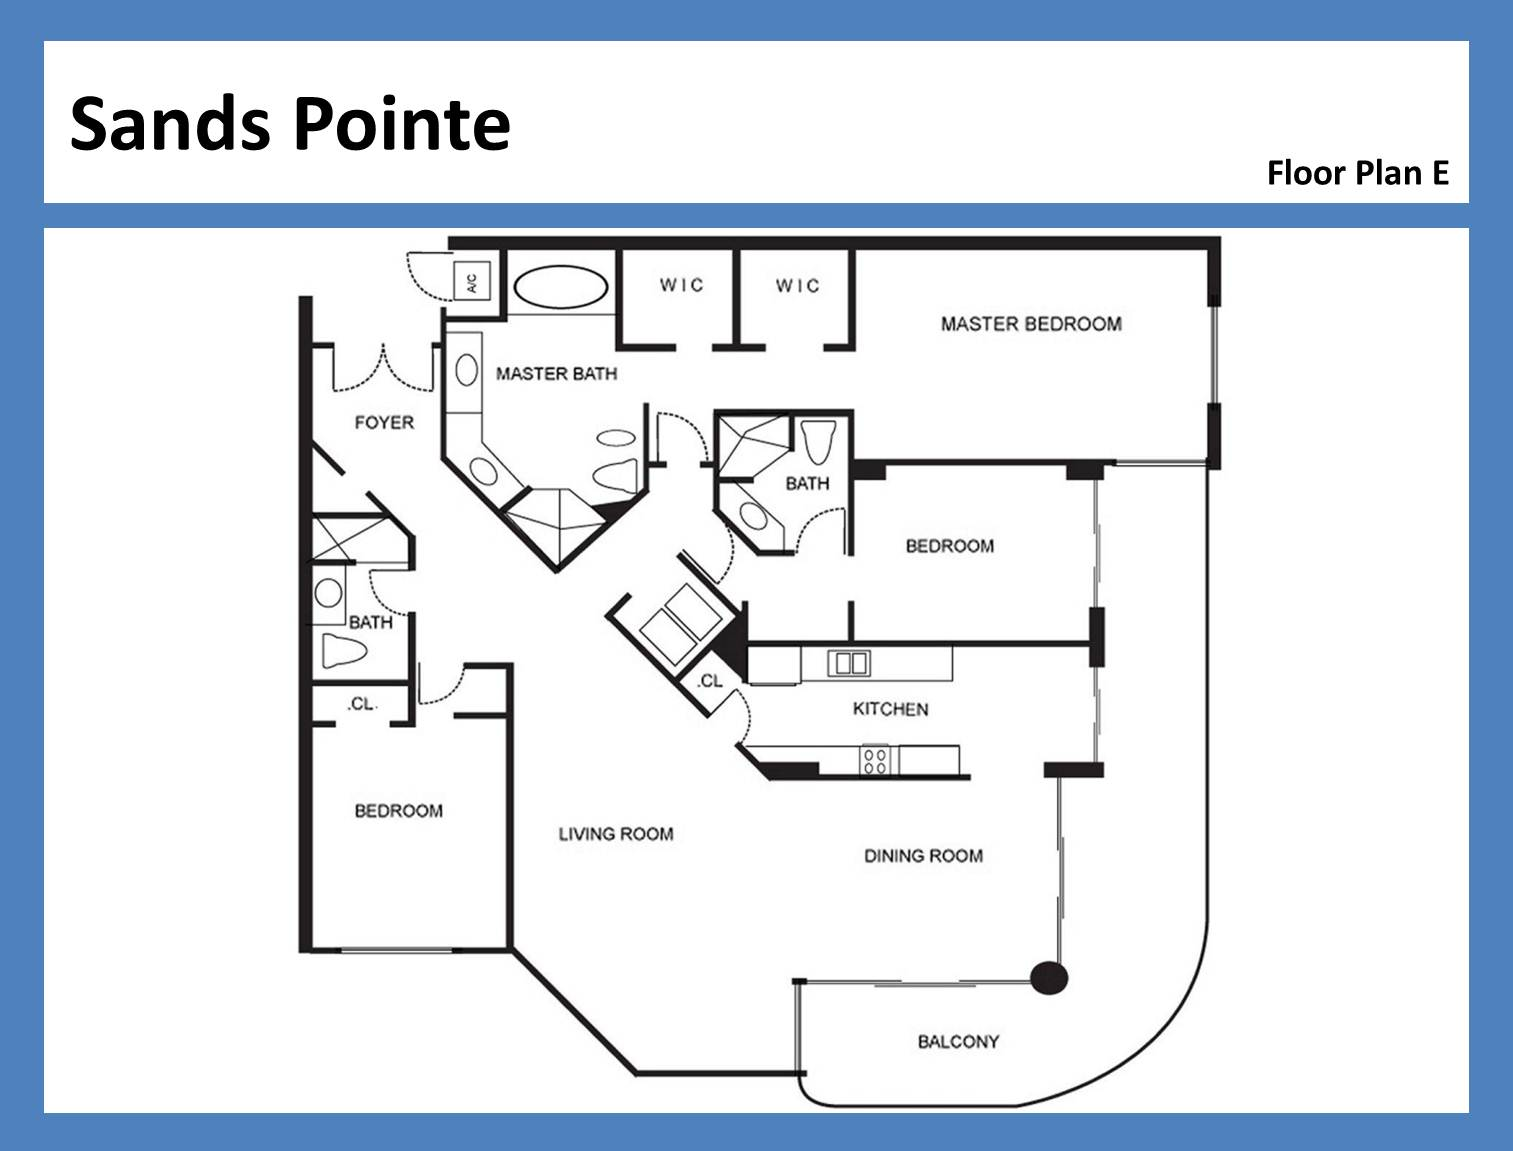 Sands Pointe - Floorplan 2